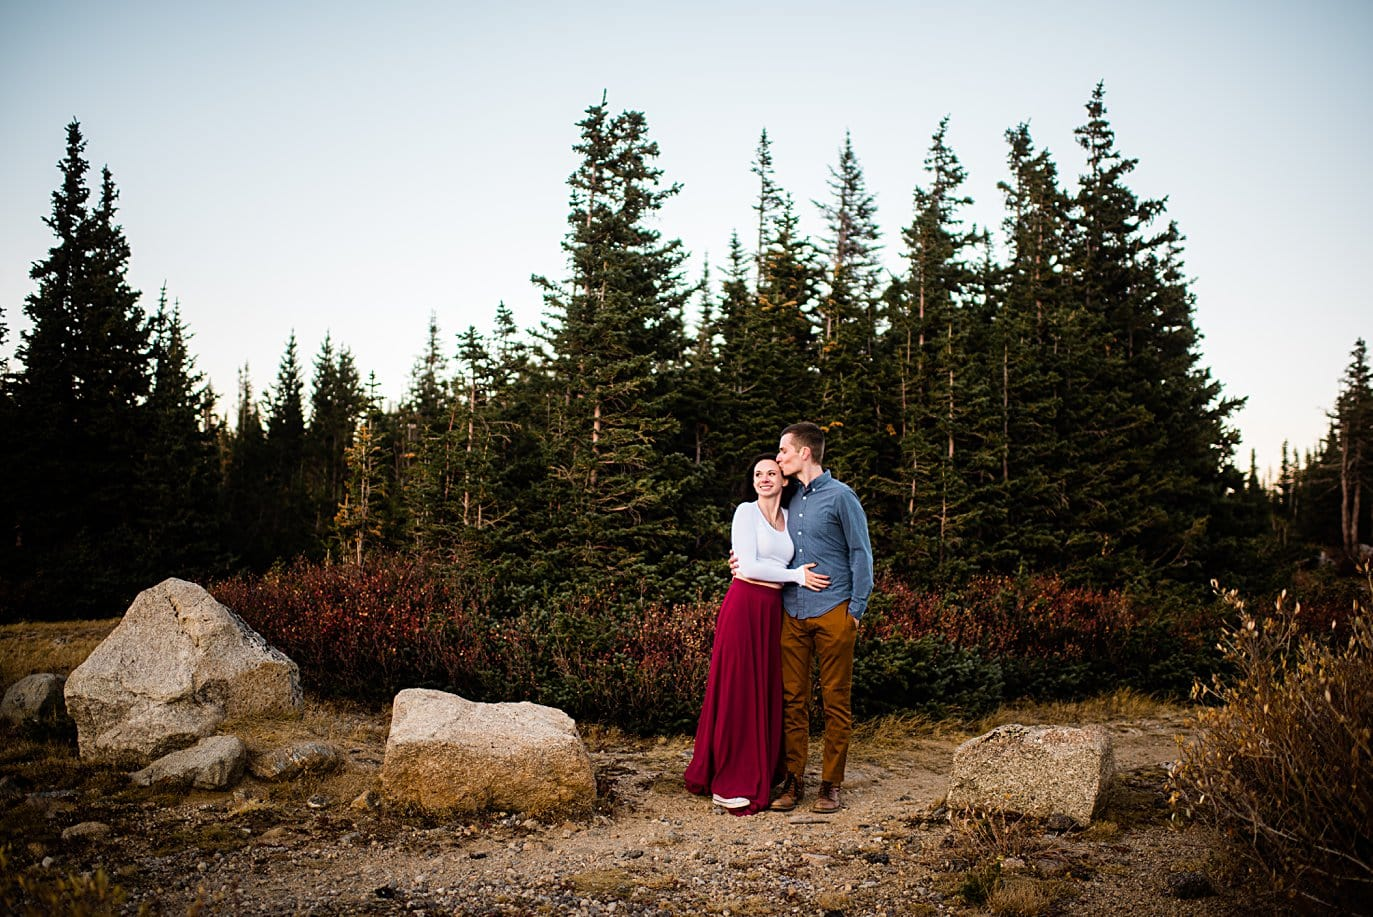 sunset photo in the trees at Brainard lake engagement session by Boulder wedding photographer Jennie Crate